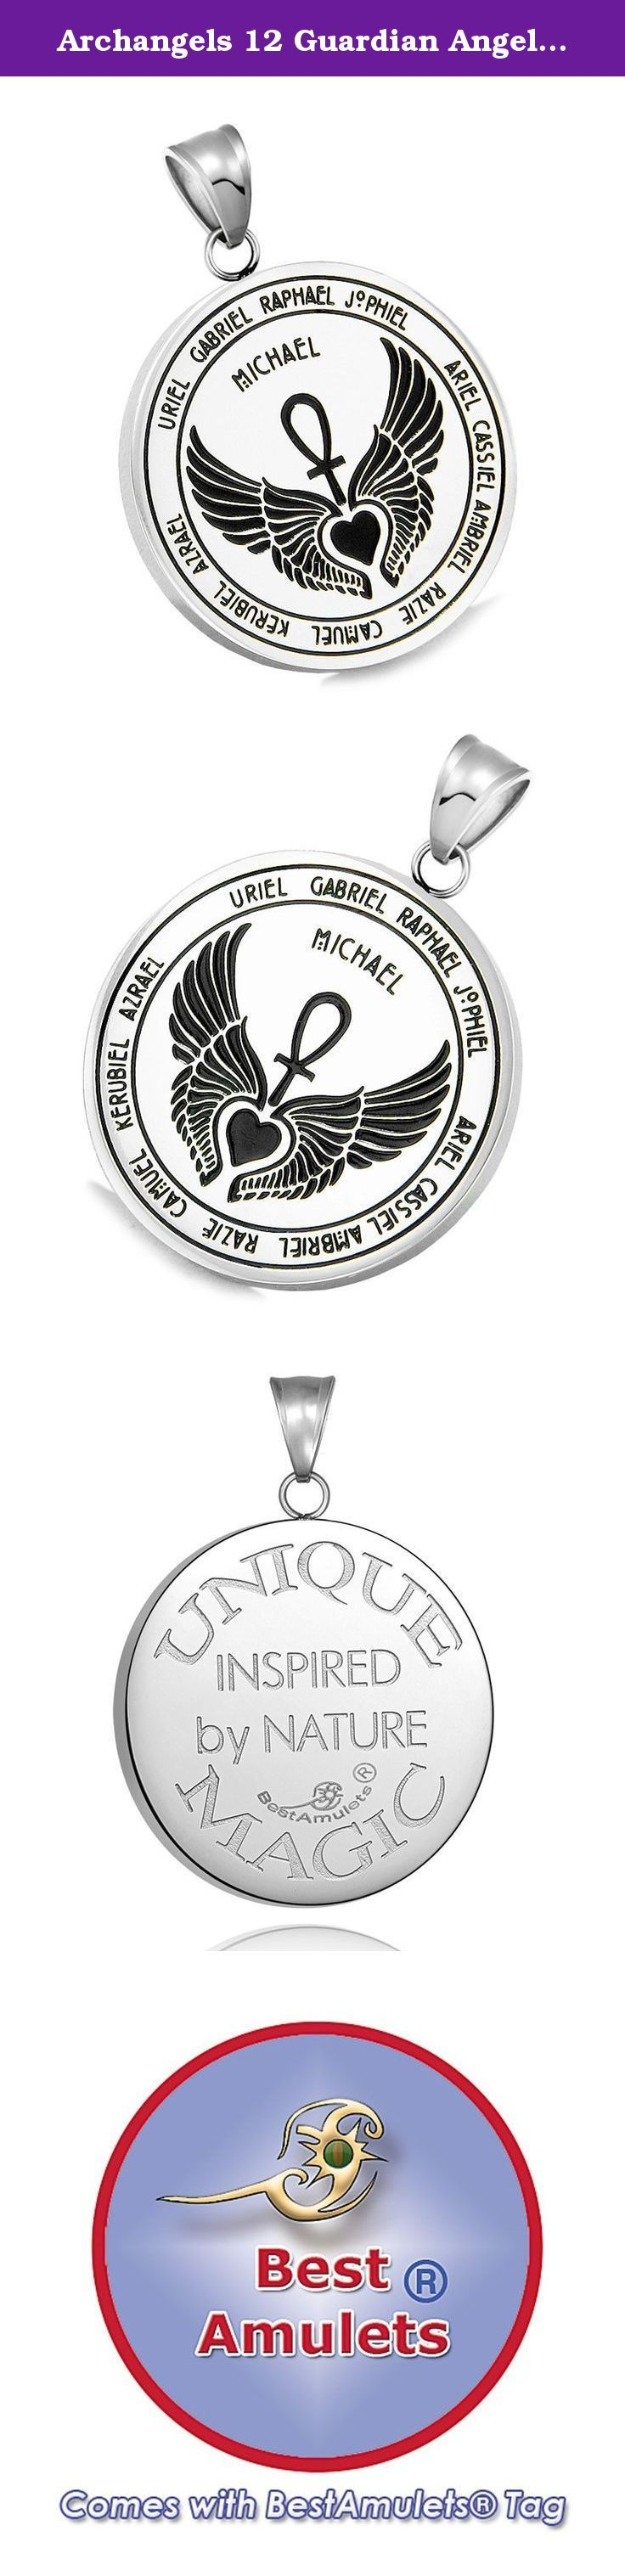 Archangels 12 Guardian Angels Medallion Wings Heart Ankh Life Power Magic Amulet Pendant 22 Inch Necklace. Absolutely Unique and Special Archangels 12 Guardian Angels Amulet with Magic Powers. The Symbols are Engraved over the Medallion and Looks absolutely Amazing. The Amulet is Designed listing All 12 Archangels - Michael, Uriel, Gabriel, Raphael, Jophiel, Ariel, Cassiel, Ambriel, Raziel, Camuel, Kerubiel and Azrael and has Beautiful Angel Wings embracing Heart and Ankh Power of Life...